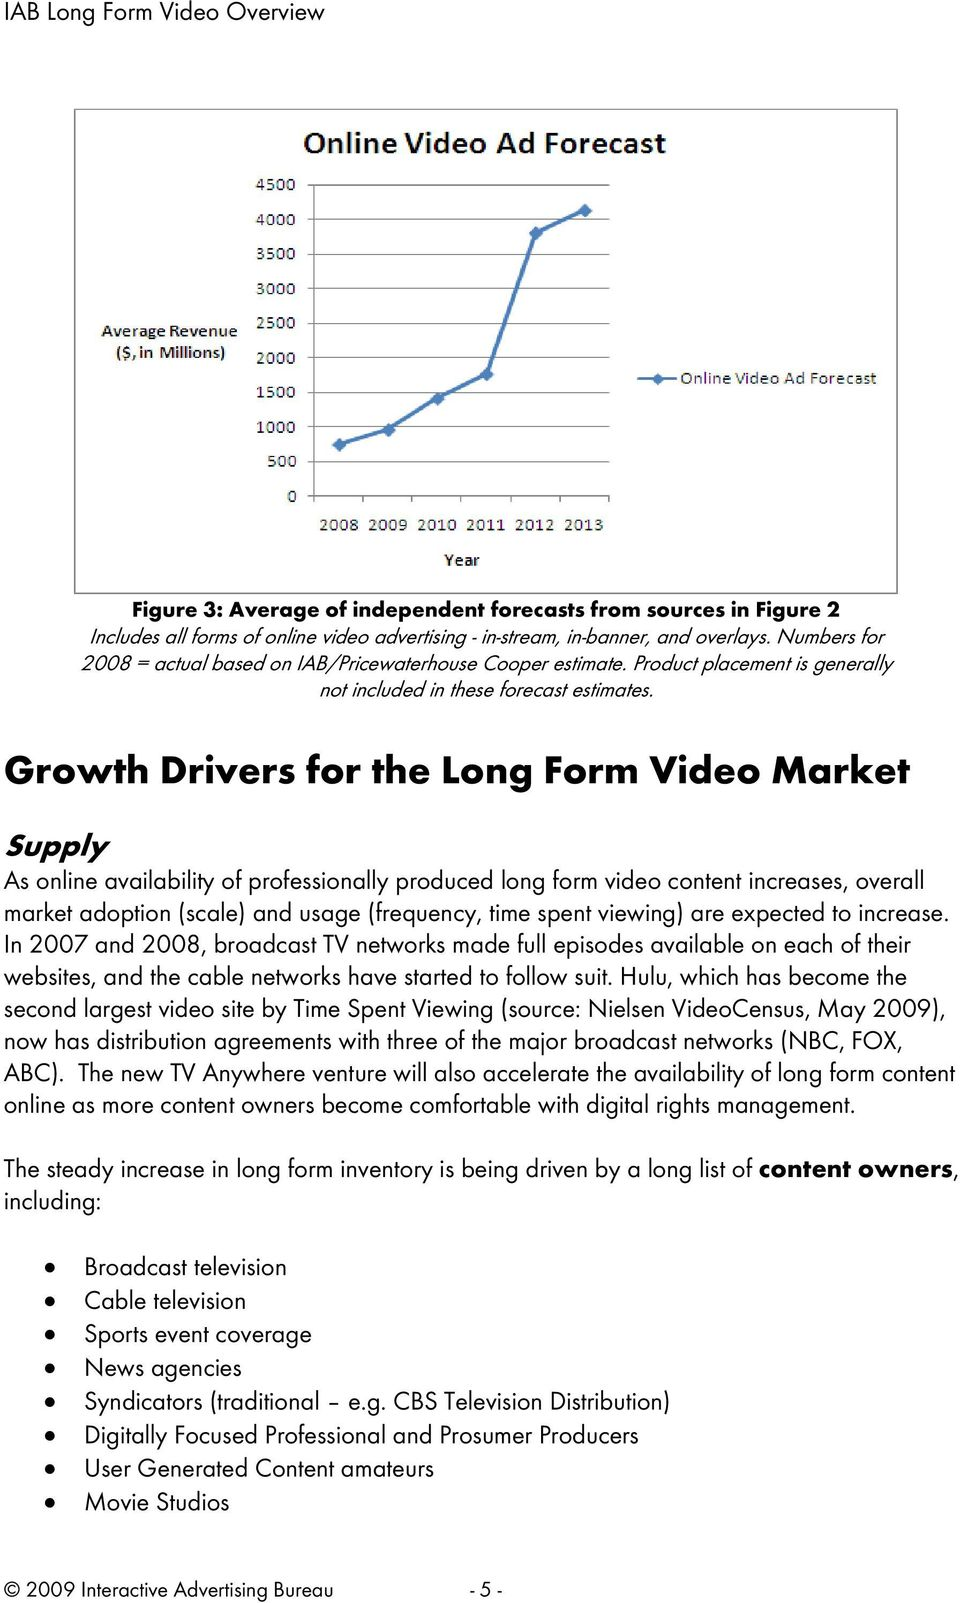 Growth Drivers for the Long Form Video Market Supply As online availability of professionally produced long form video content increases, overall market adoption (scale) and usage (frequency, time